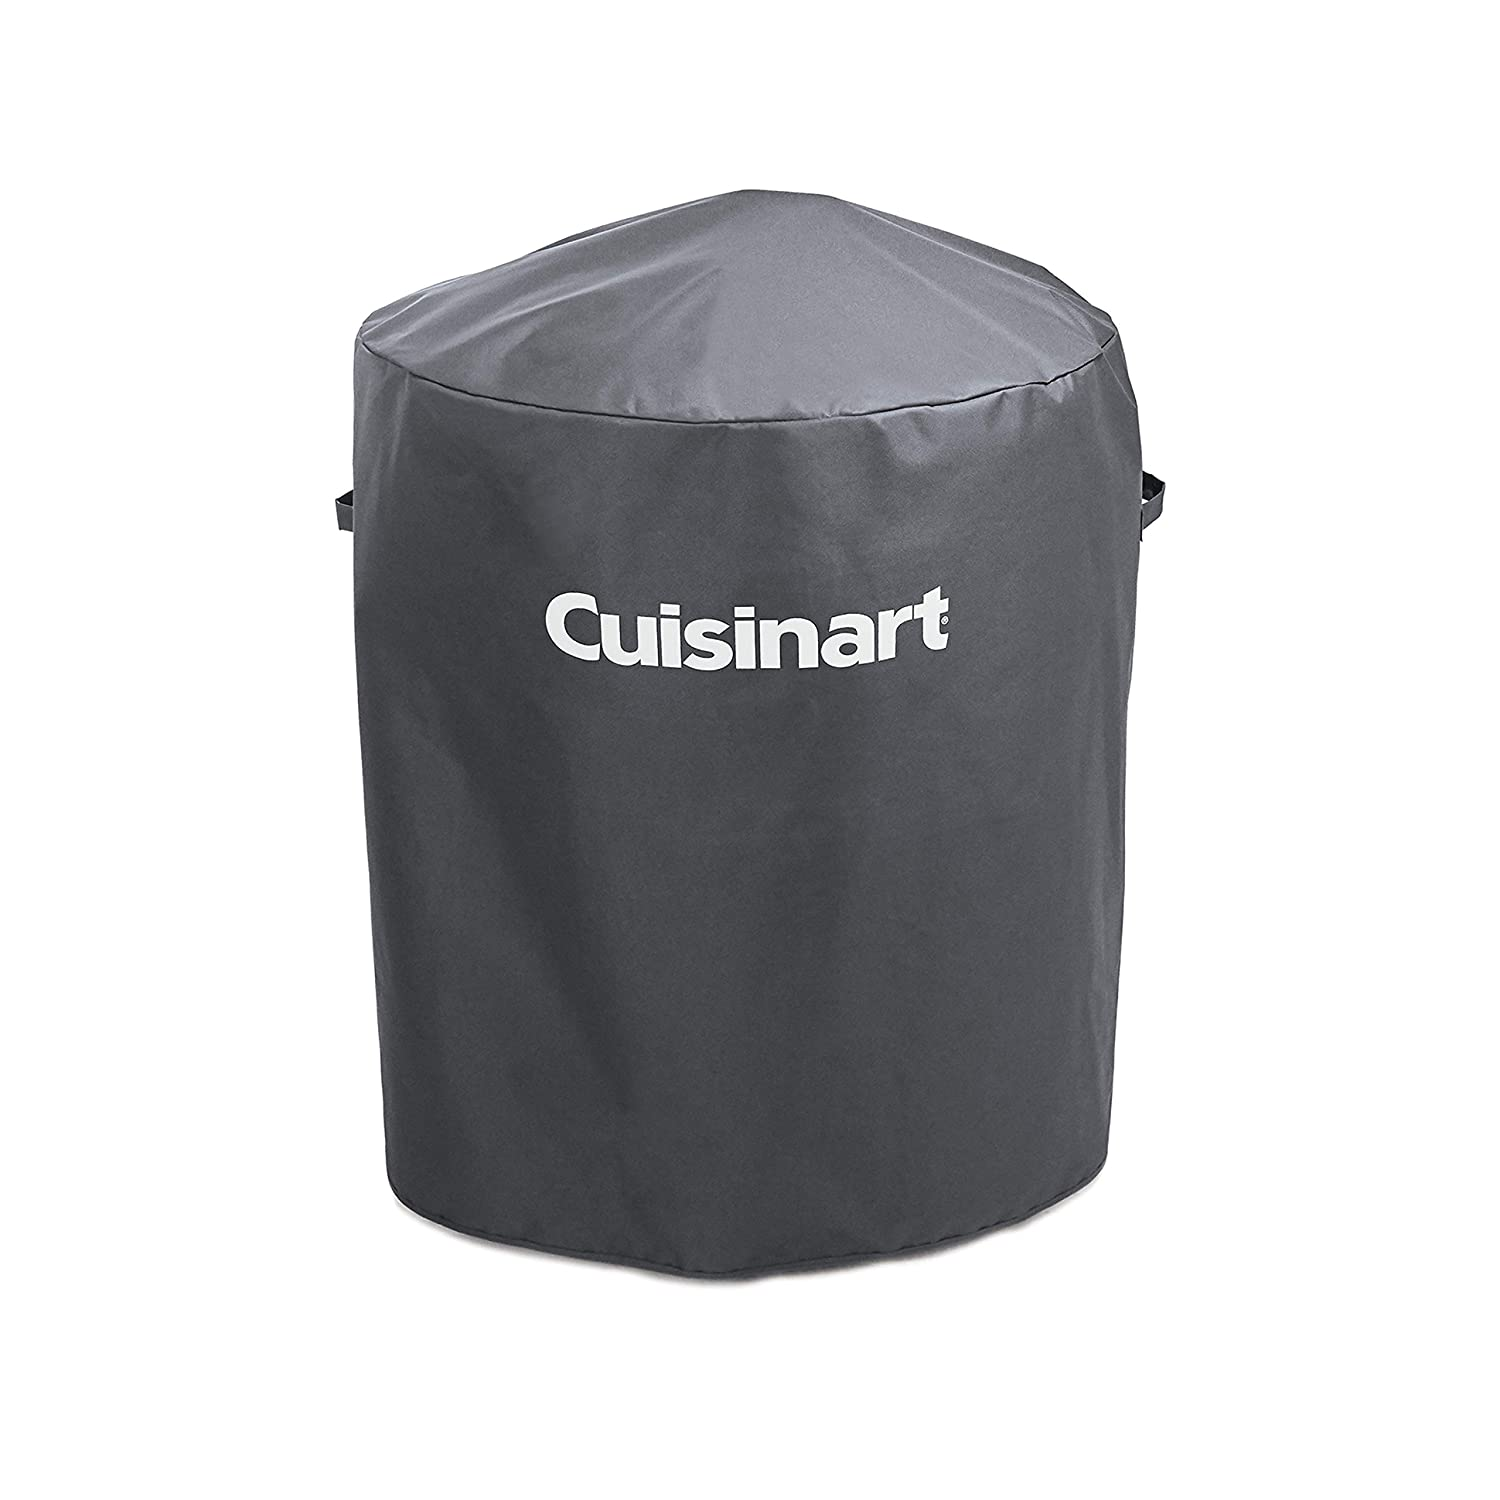 Cuisinart CGWM-003 360° Griddle Cooking Center Cover, Black